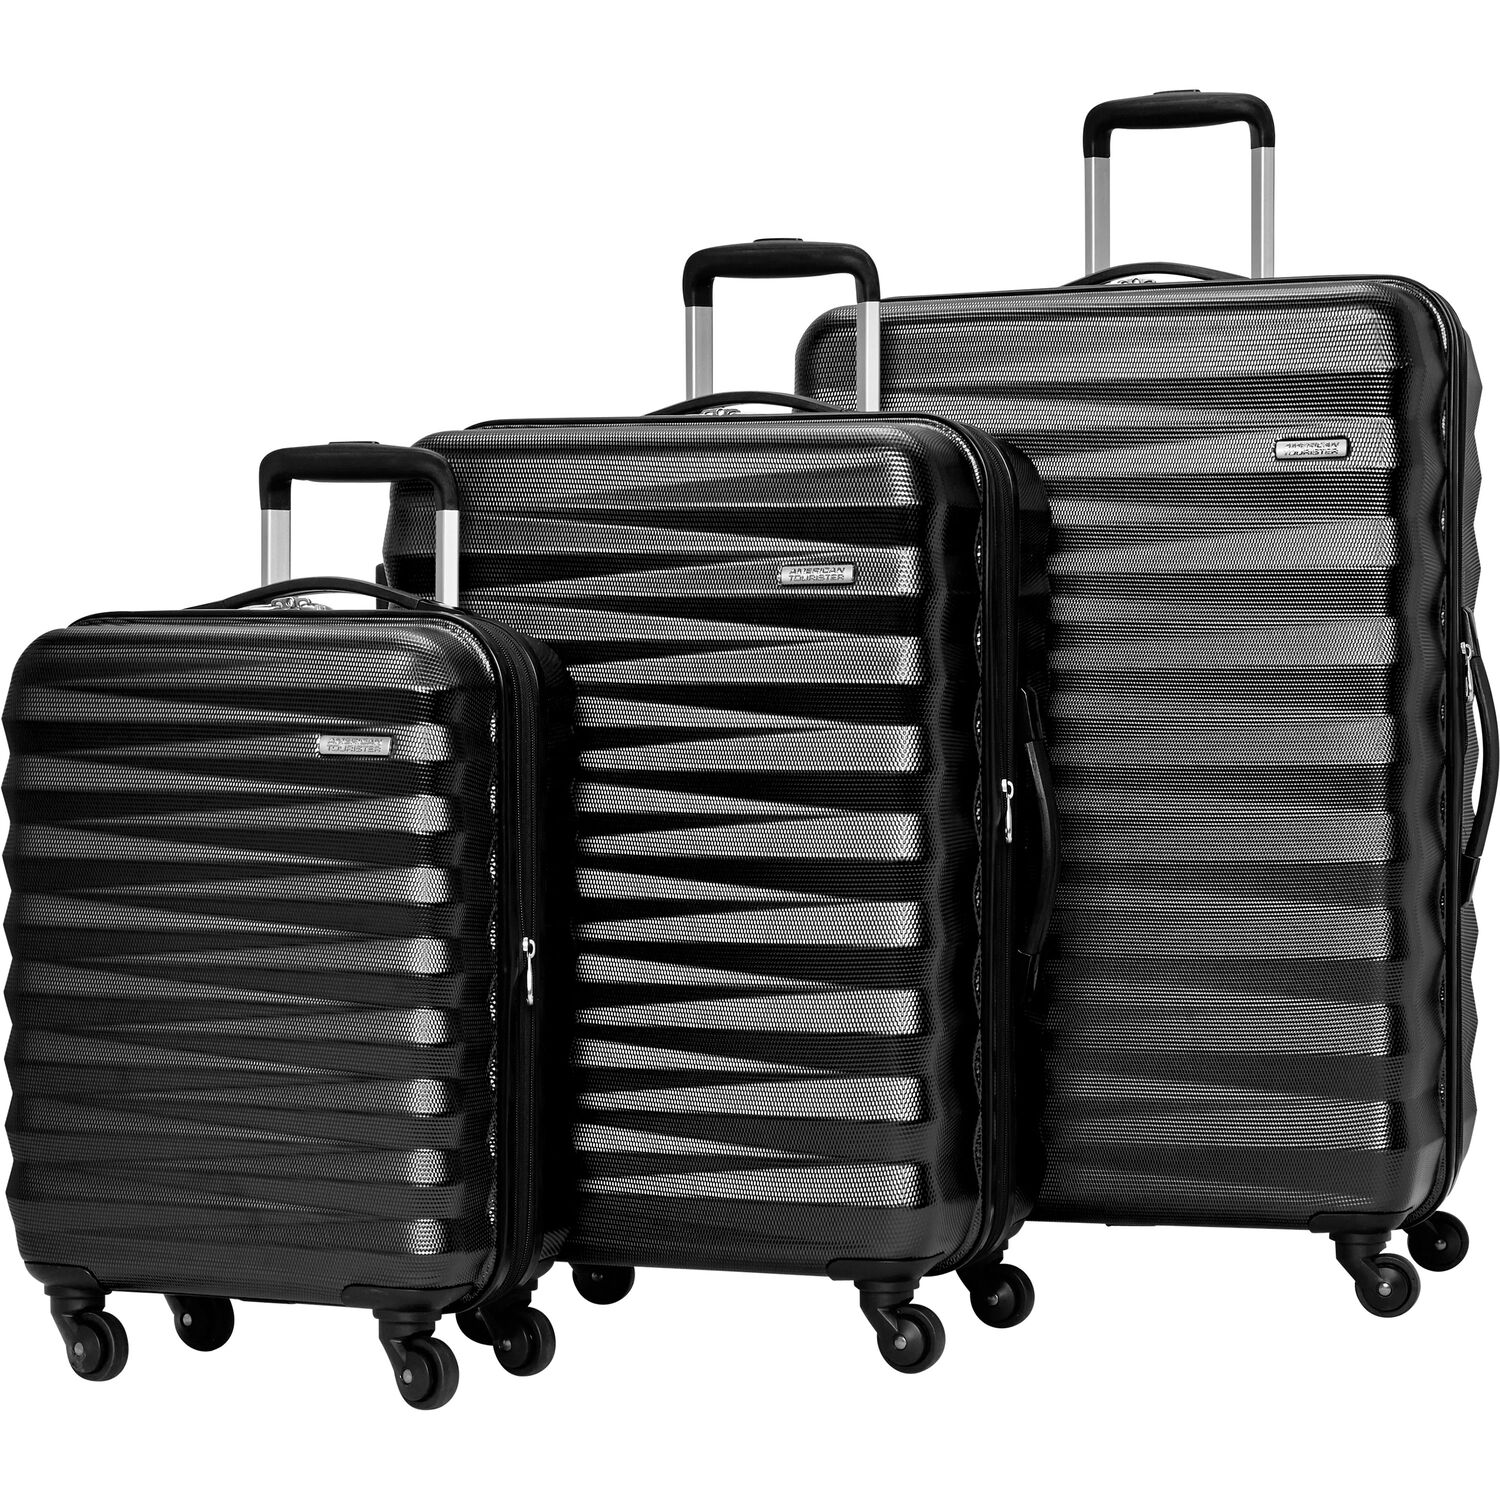 American Tourister Triumph NX 3 Piece Set in the color Black.